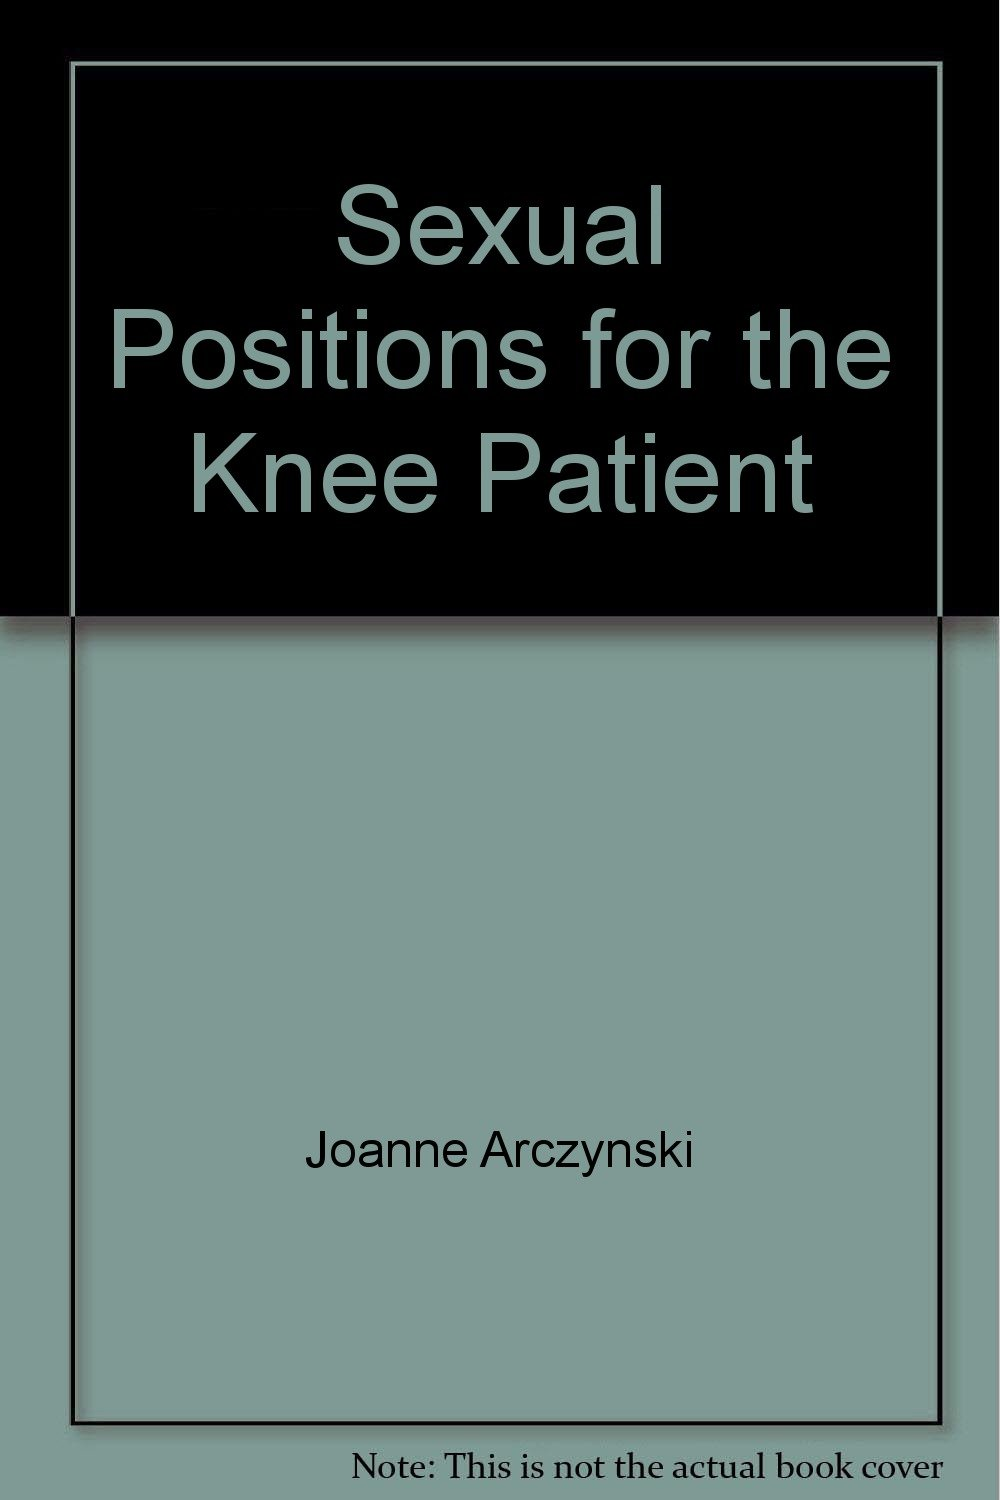 Sexual Positions for the Knee Patient Paperback